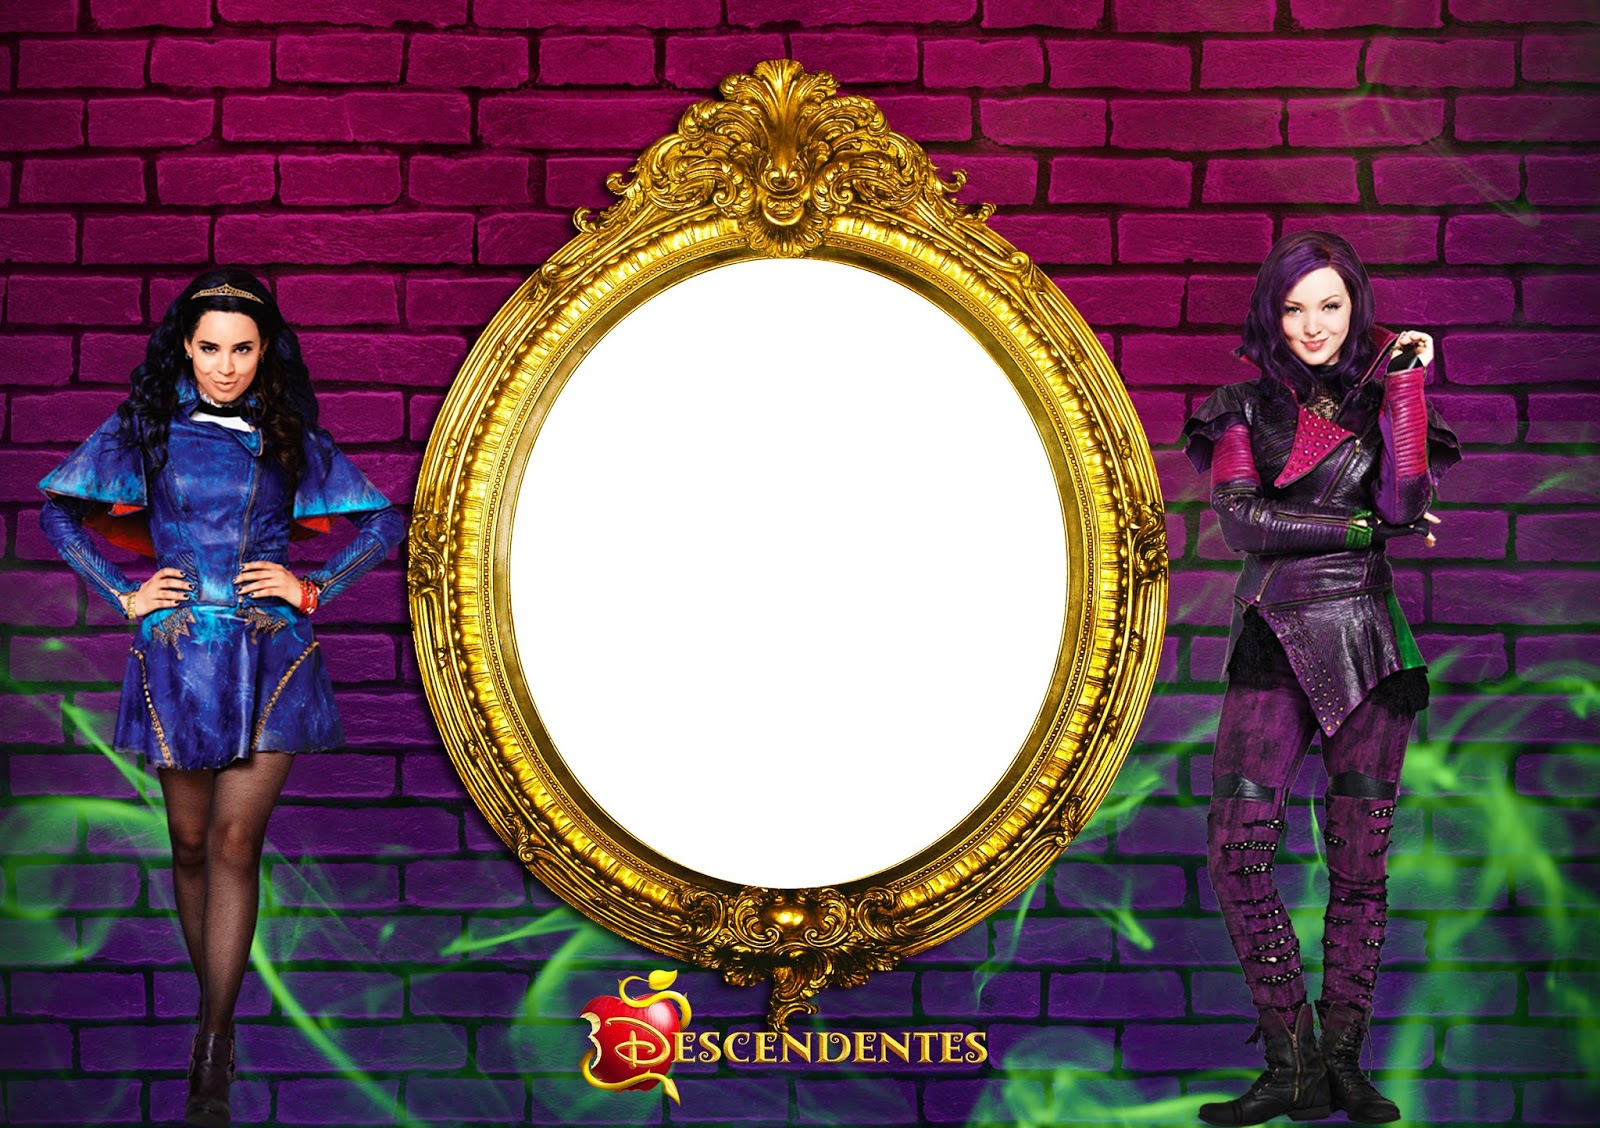 Descendants Party Free Printable Invitations Labels Or Cards